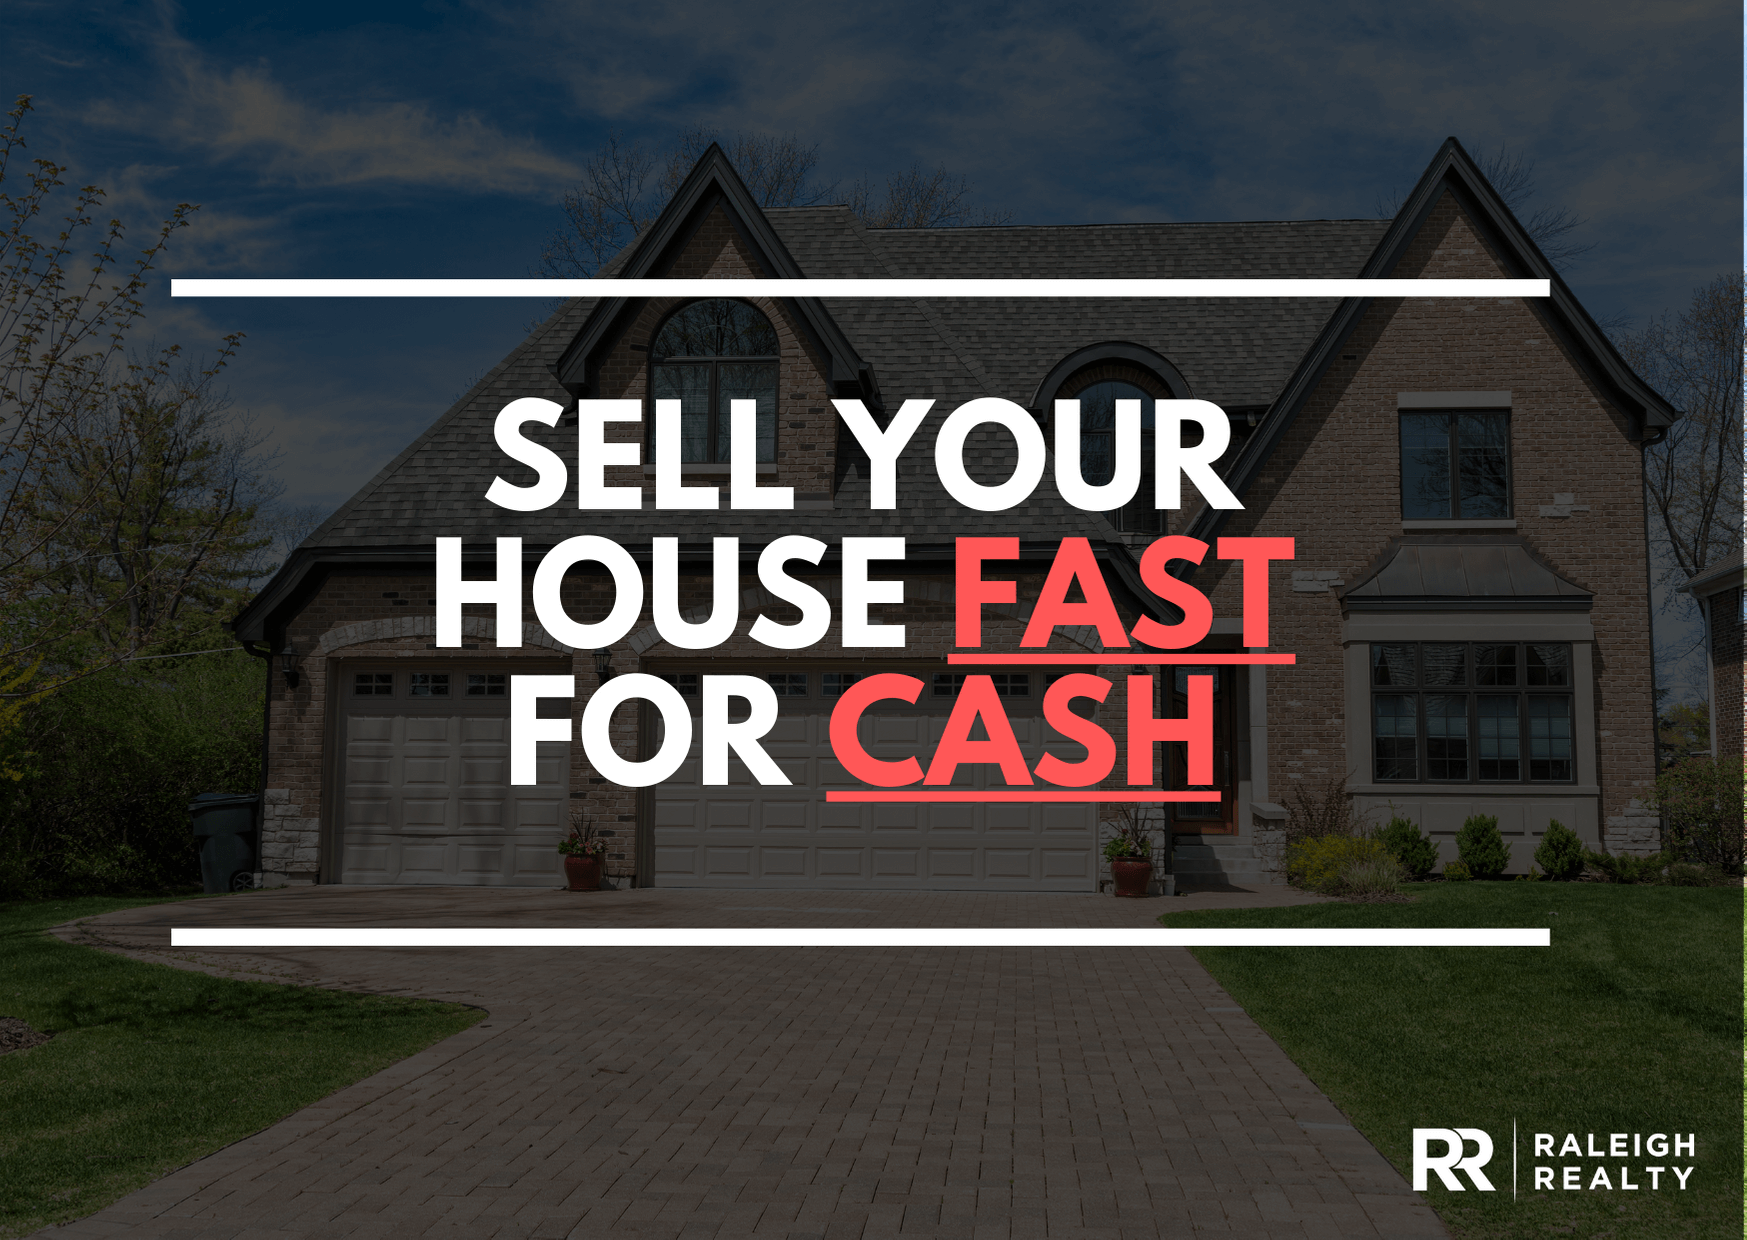 Sell Your House Fast For Cash - Fast sale for cash Real Estate